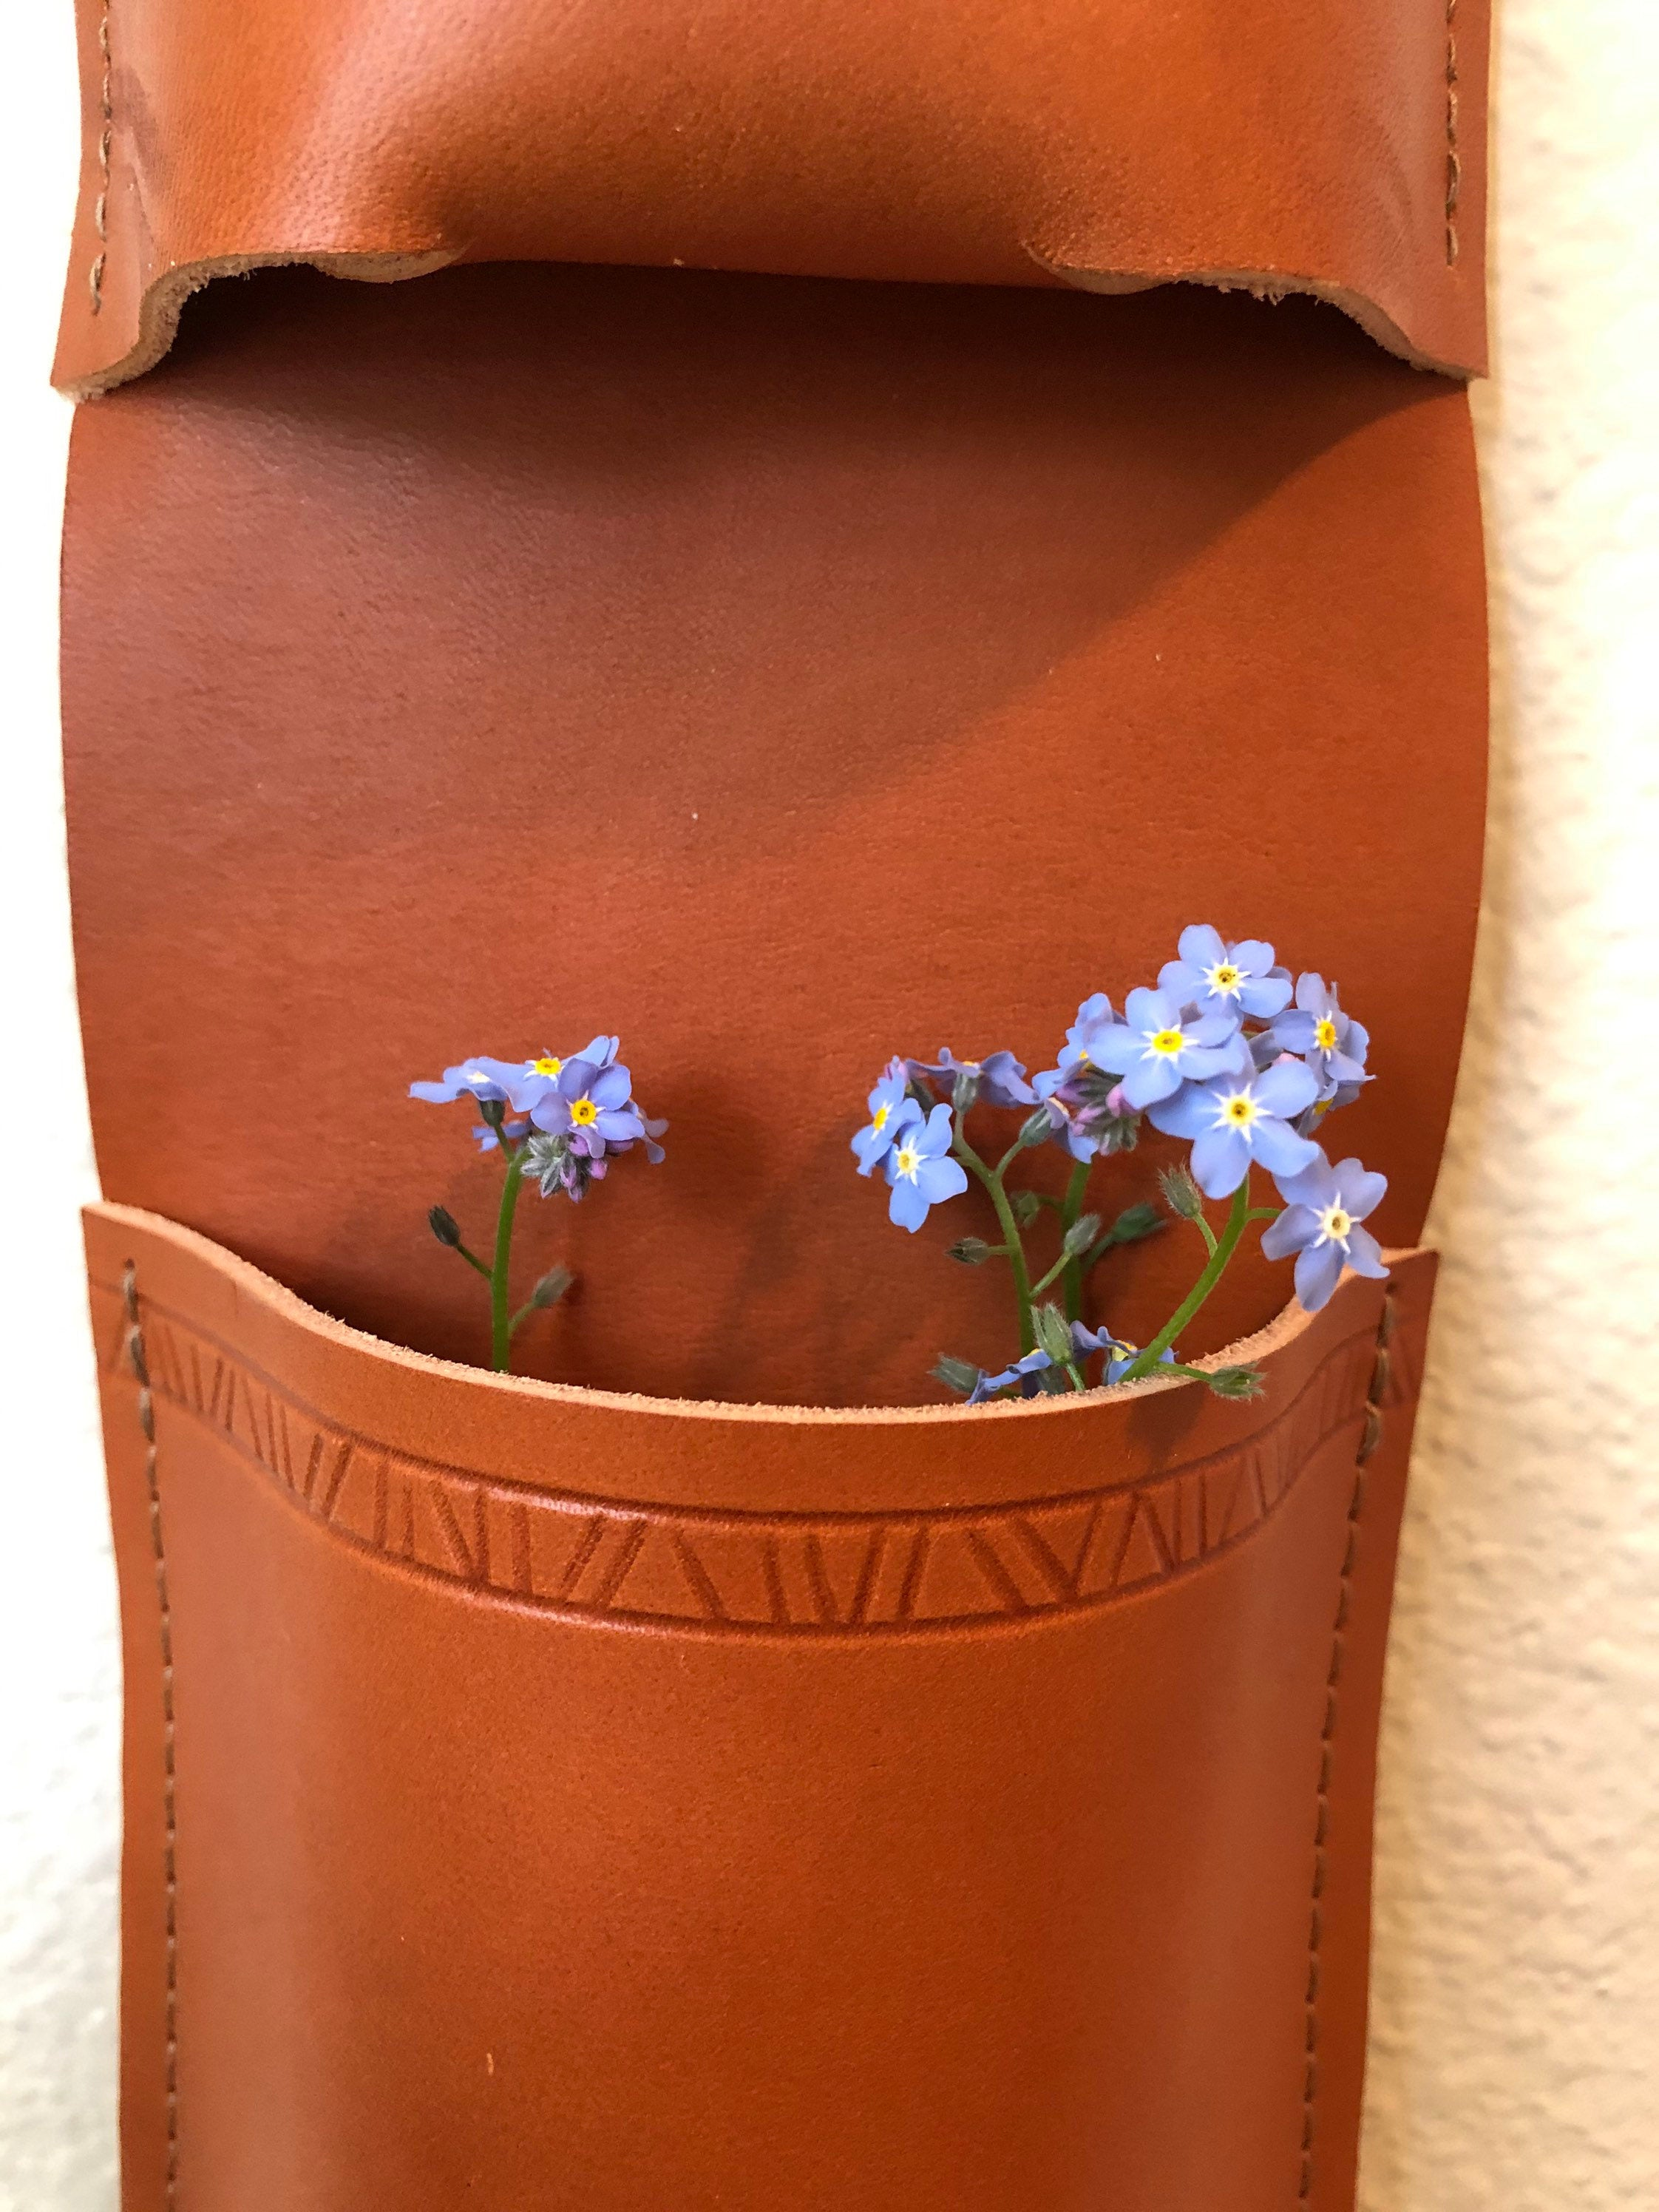 Close up of hanging tan leather organizer with patterned border holds blue forget-me-nots